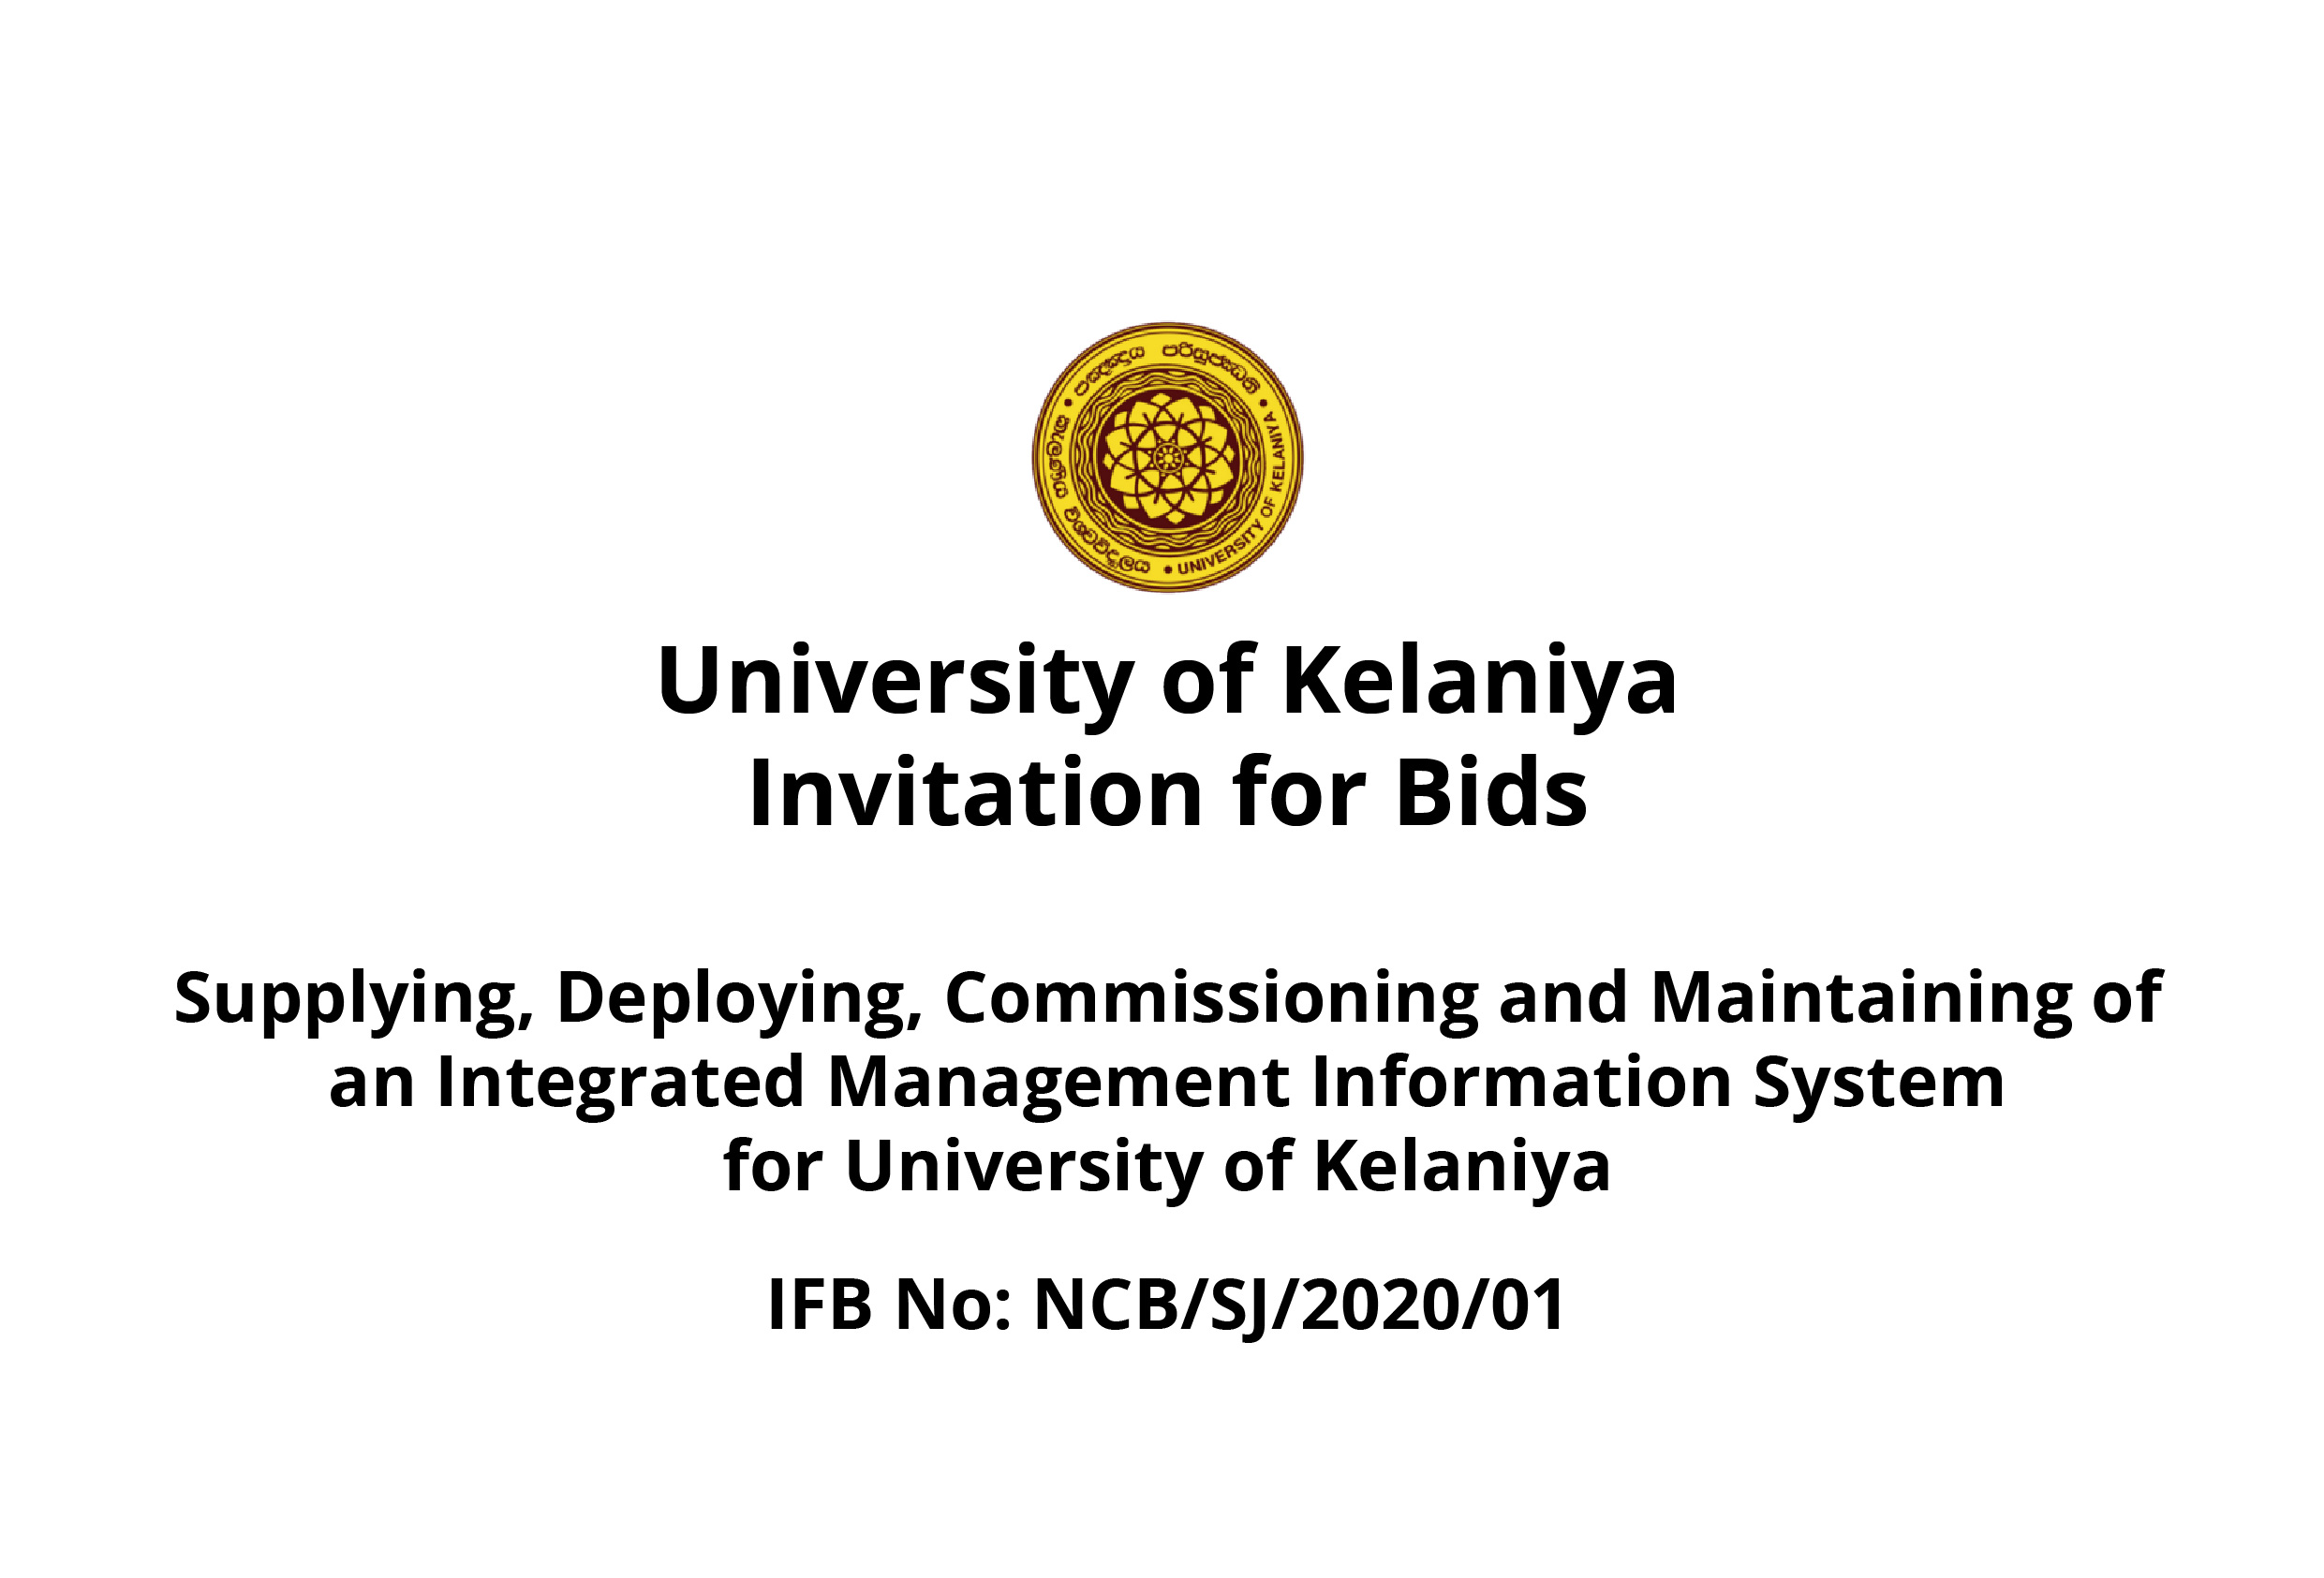 Supplying, Deploying, Commissioning and Maintaining of an Integrated Management Information System for University of Kelaniya